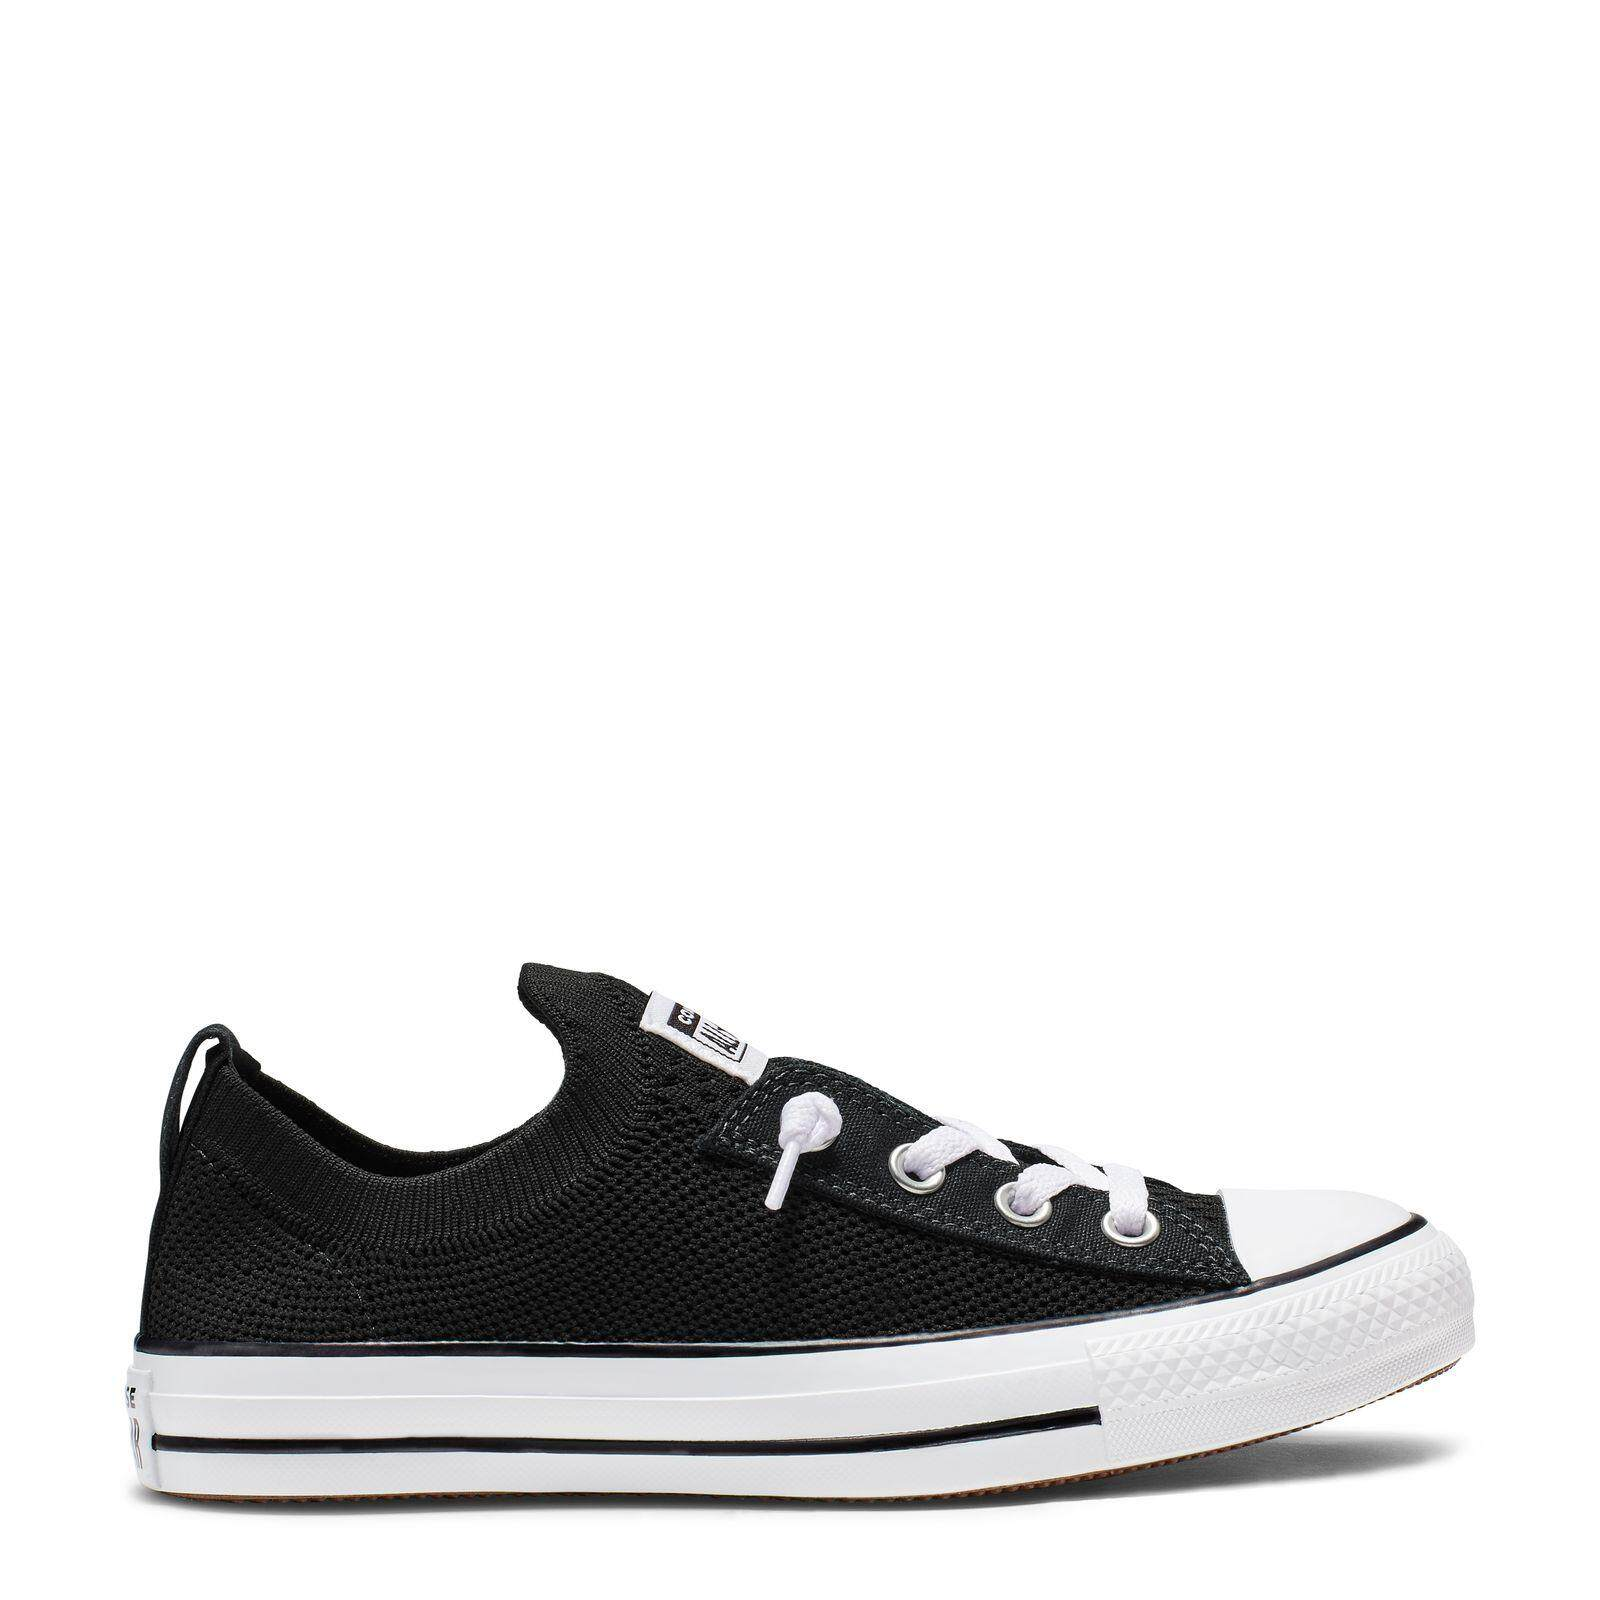 กาญจนบุรี CONVERSE CHUCK TAYLOR ALL STAR SHORELINE KNIT - SLIP - BLACK/WHITE/BLACK - WOMEN - 565489C - 565489CF9BK